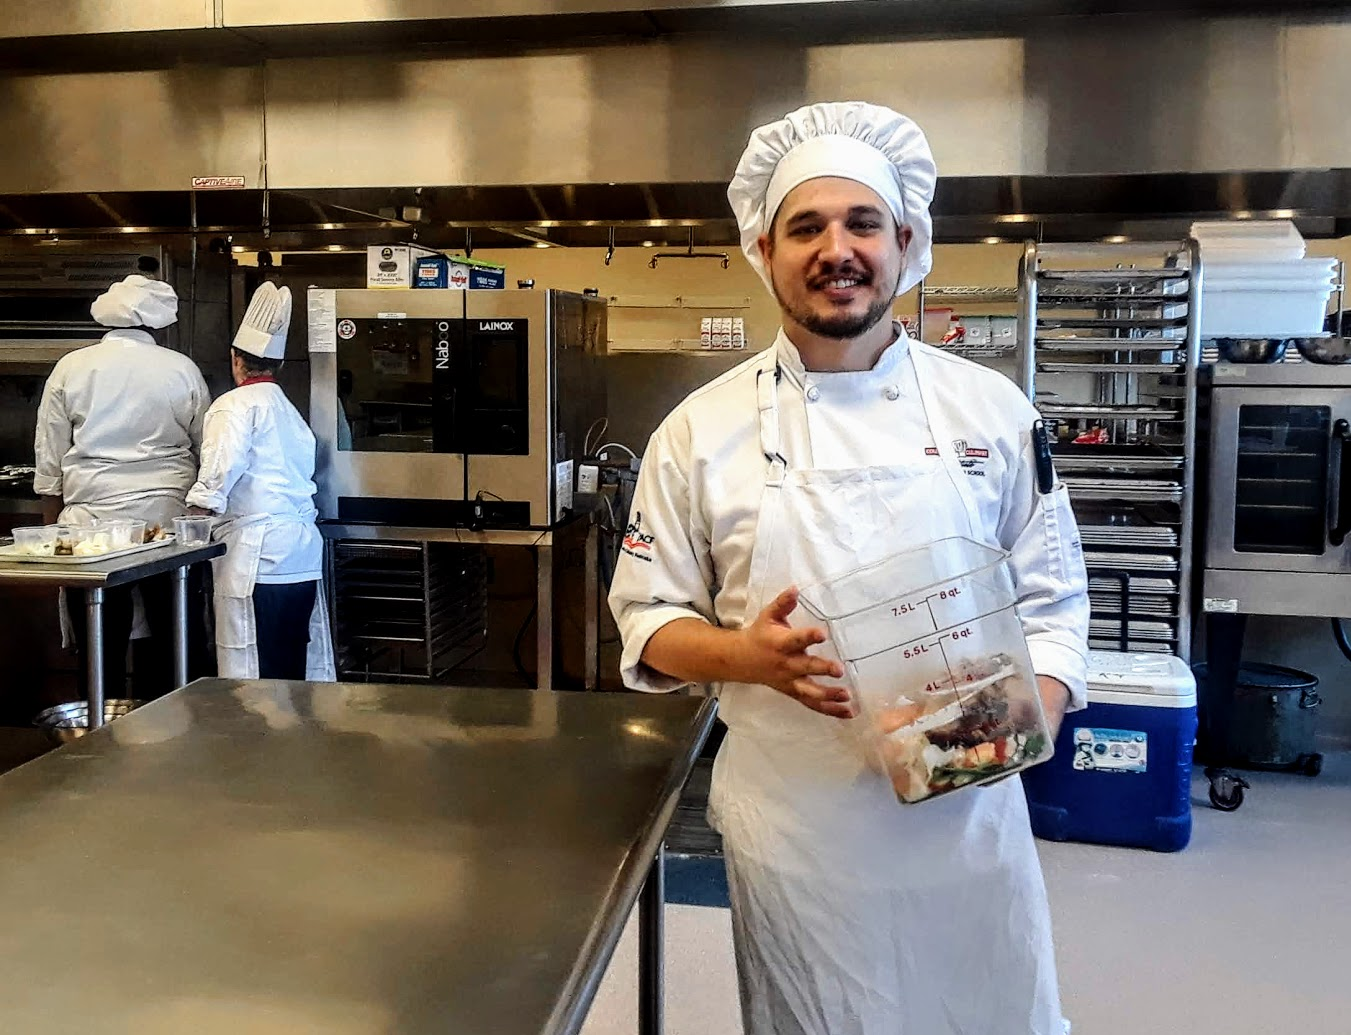 A Columbus Culinary student shows off the class's container of food scraps